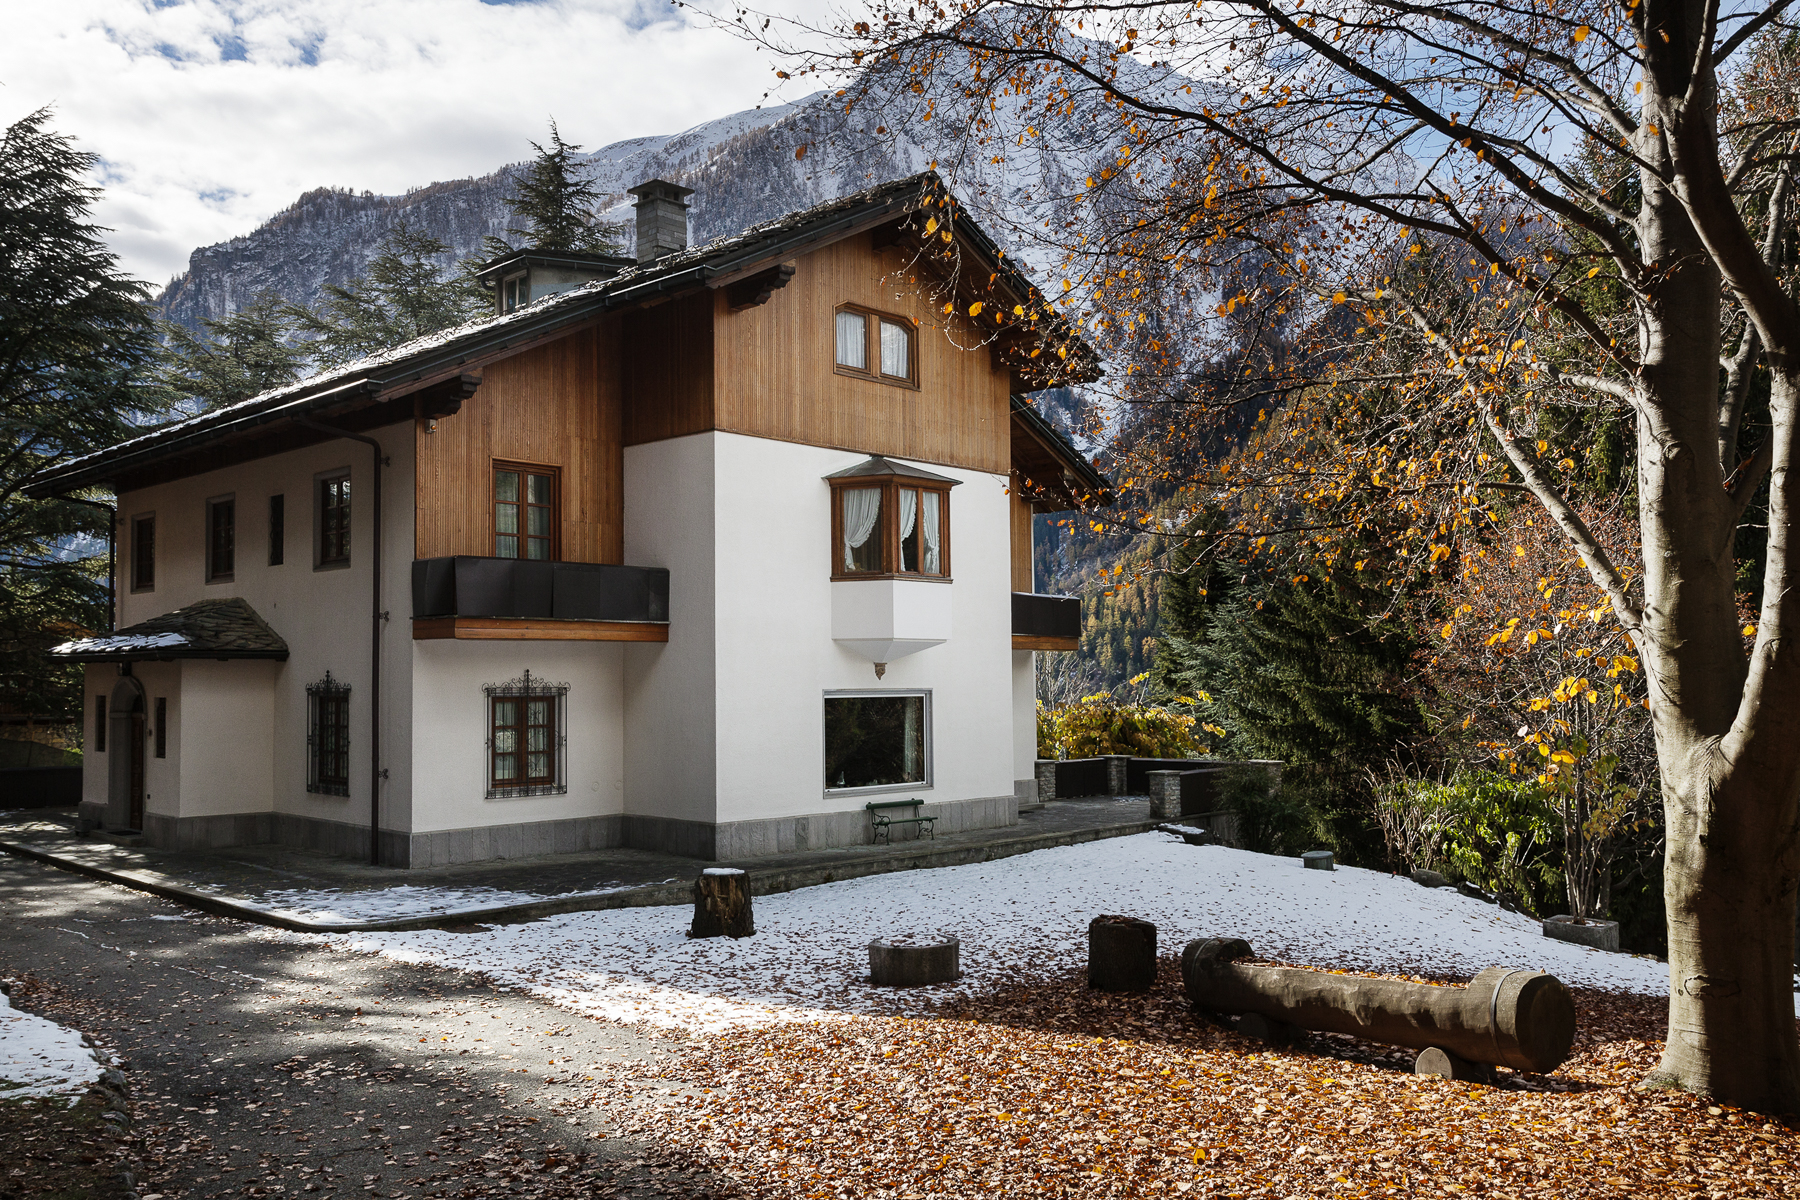 Ensemble de Villas à Courmayeur